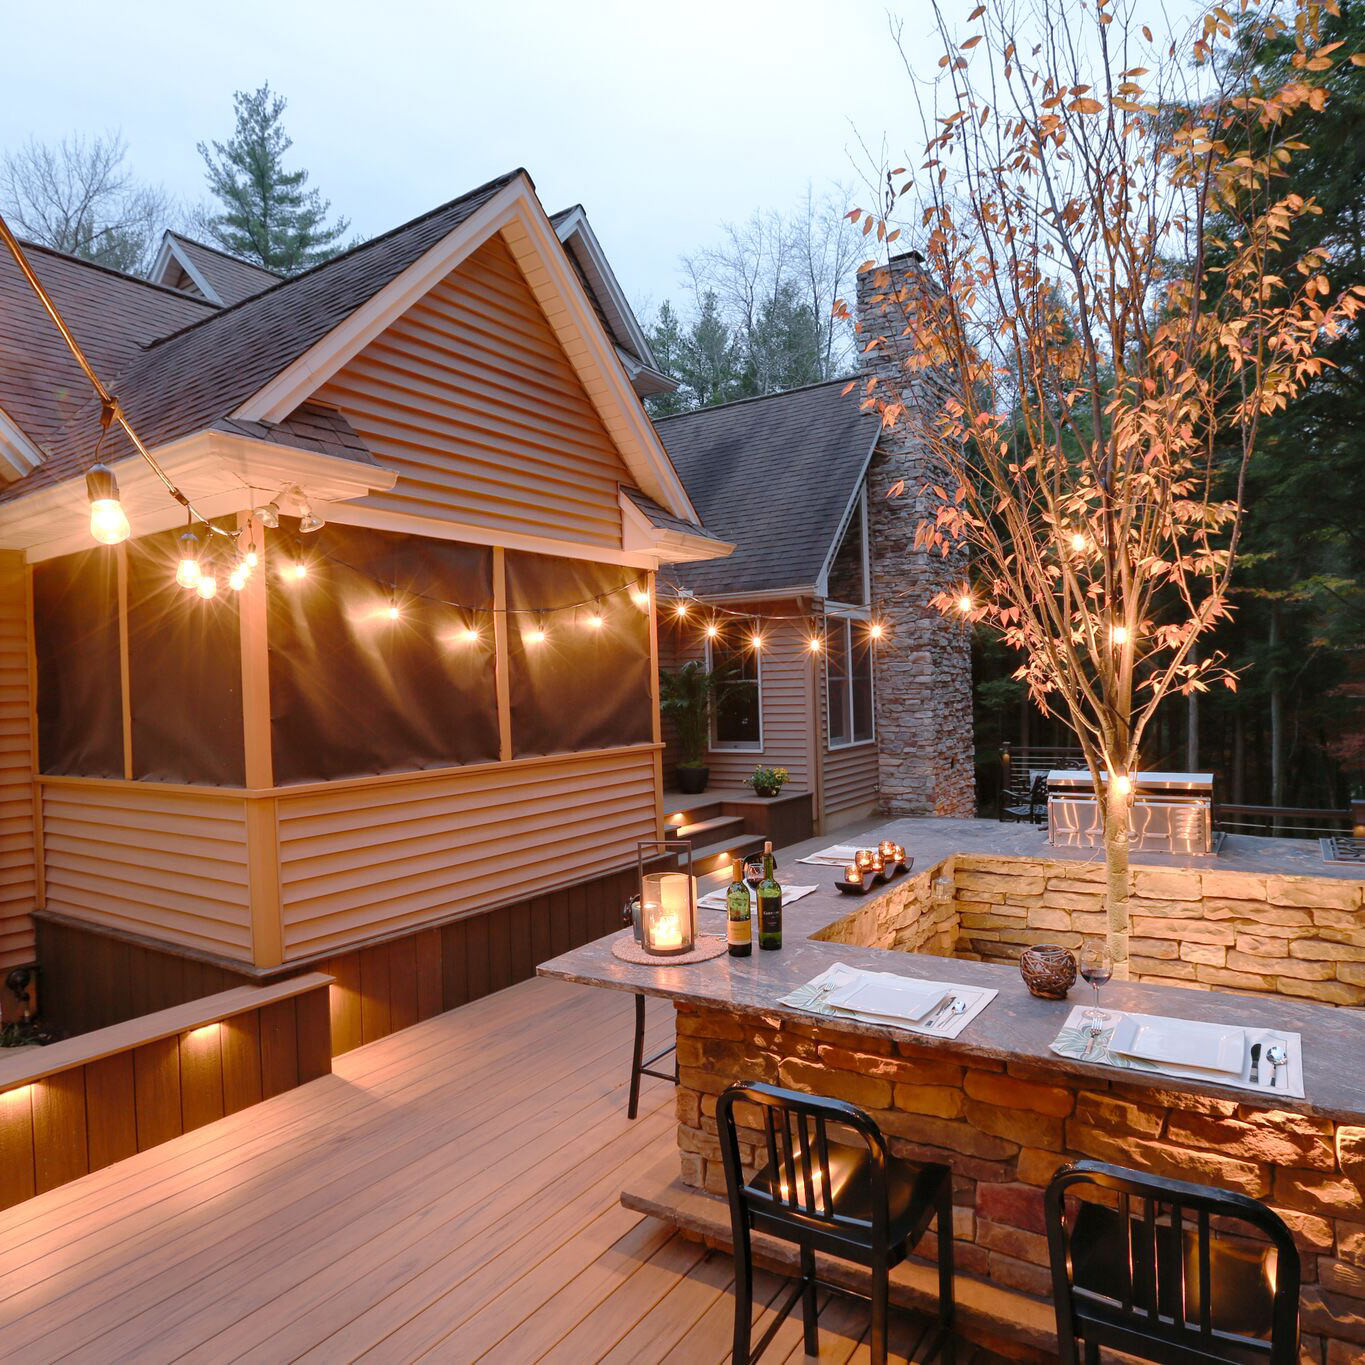 Outdoor dining never looked so good! Learn more about this MasterPLAN project that blends right into nature!